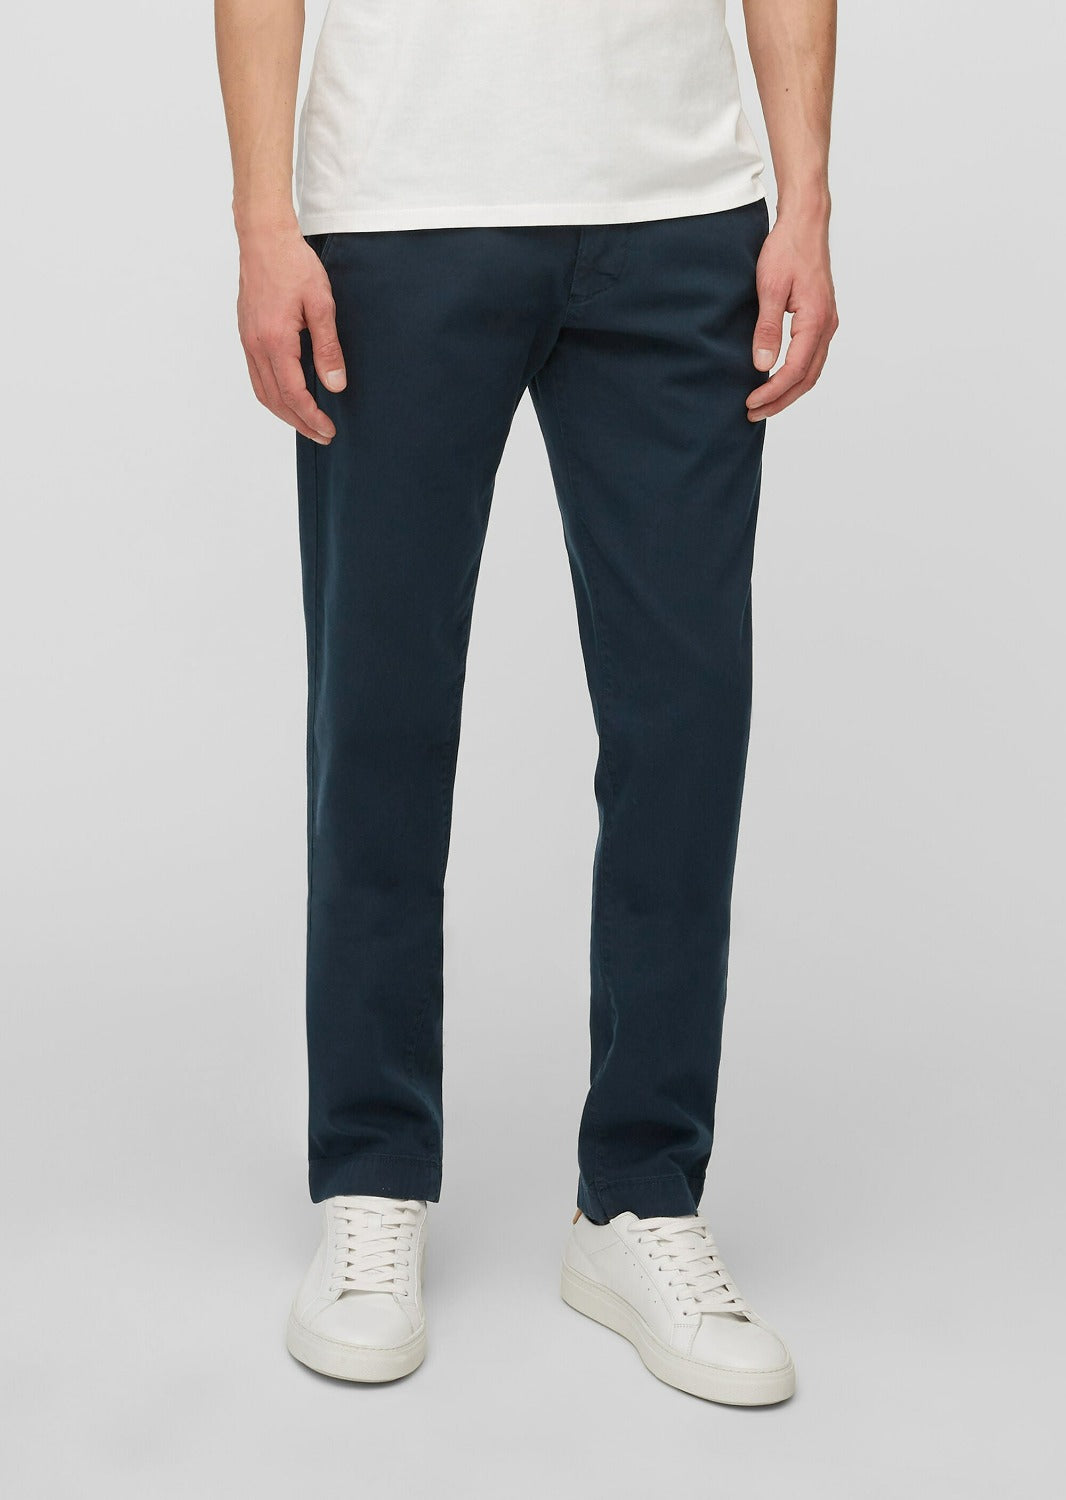 Navy Chino - Model STIG